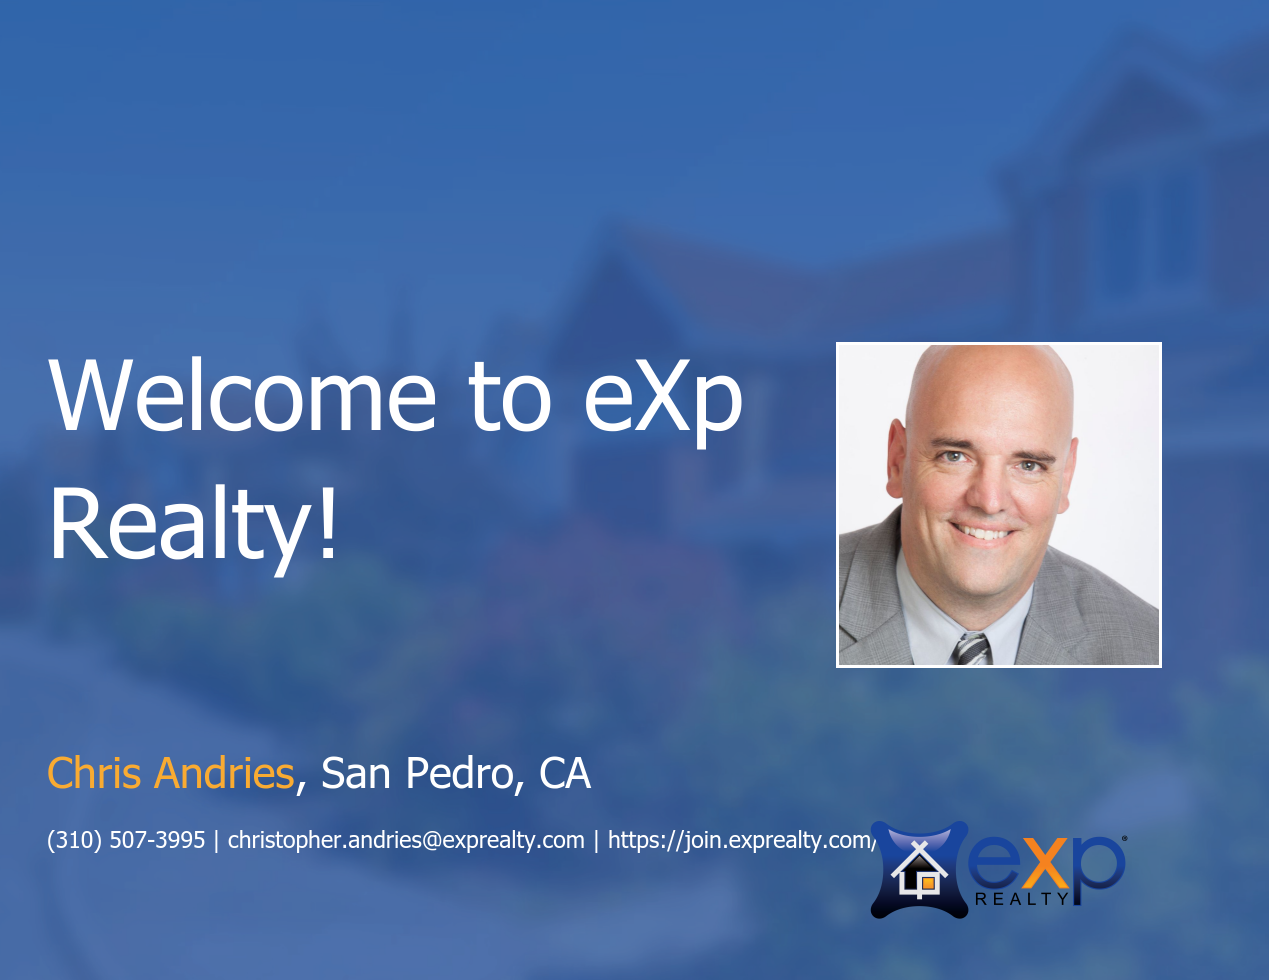 Chris Andries Joined eXp Realty!